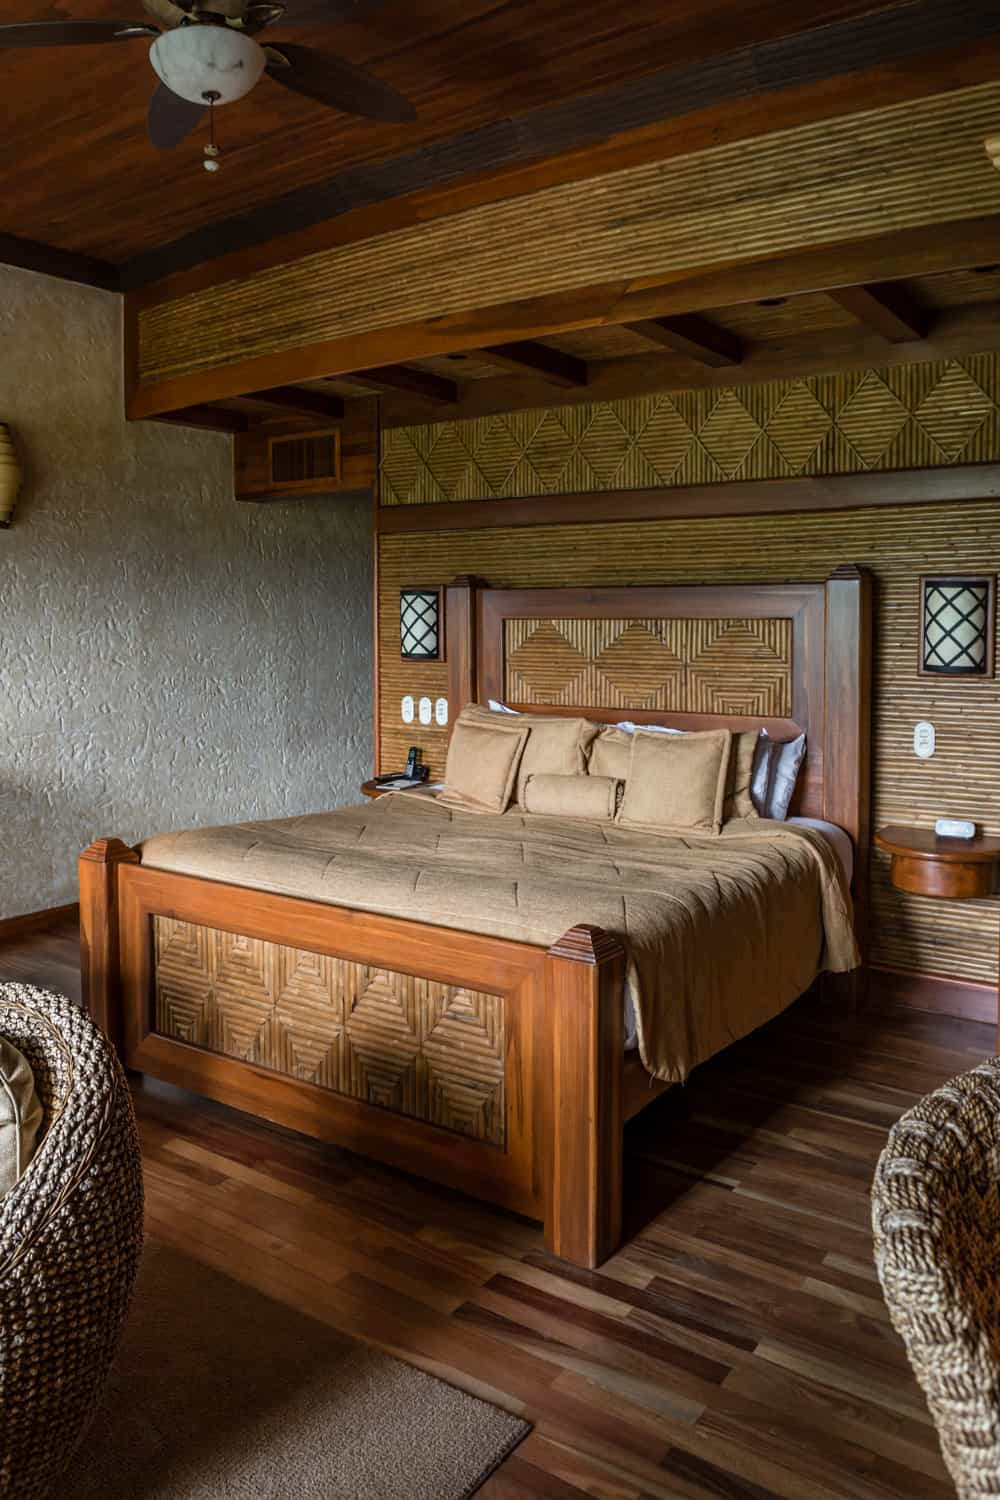 Honeymoon suite bedroom with wood floors and king-size bed.